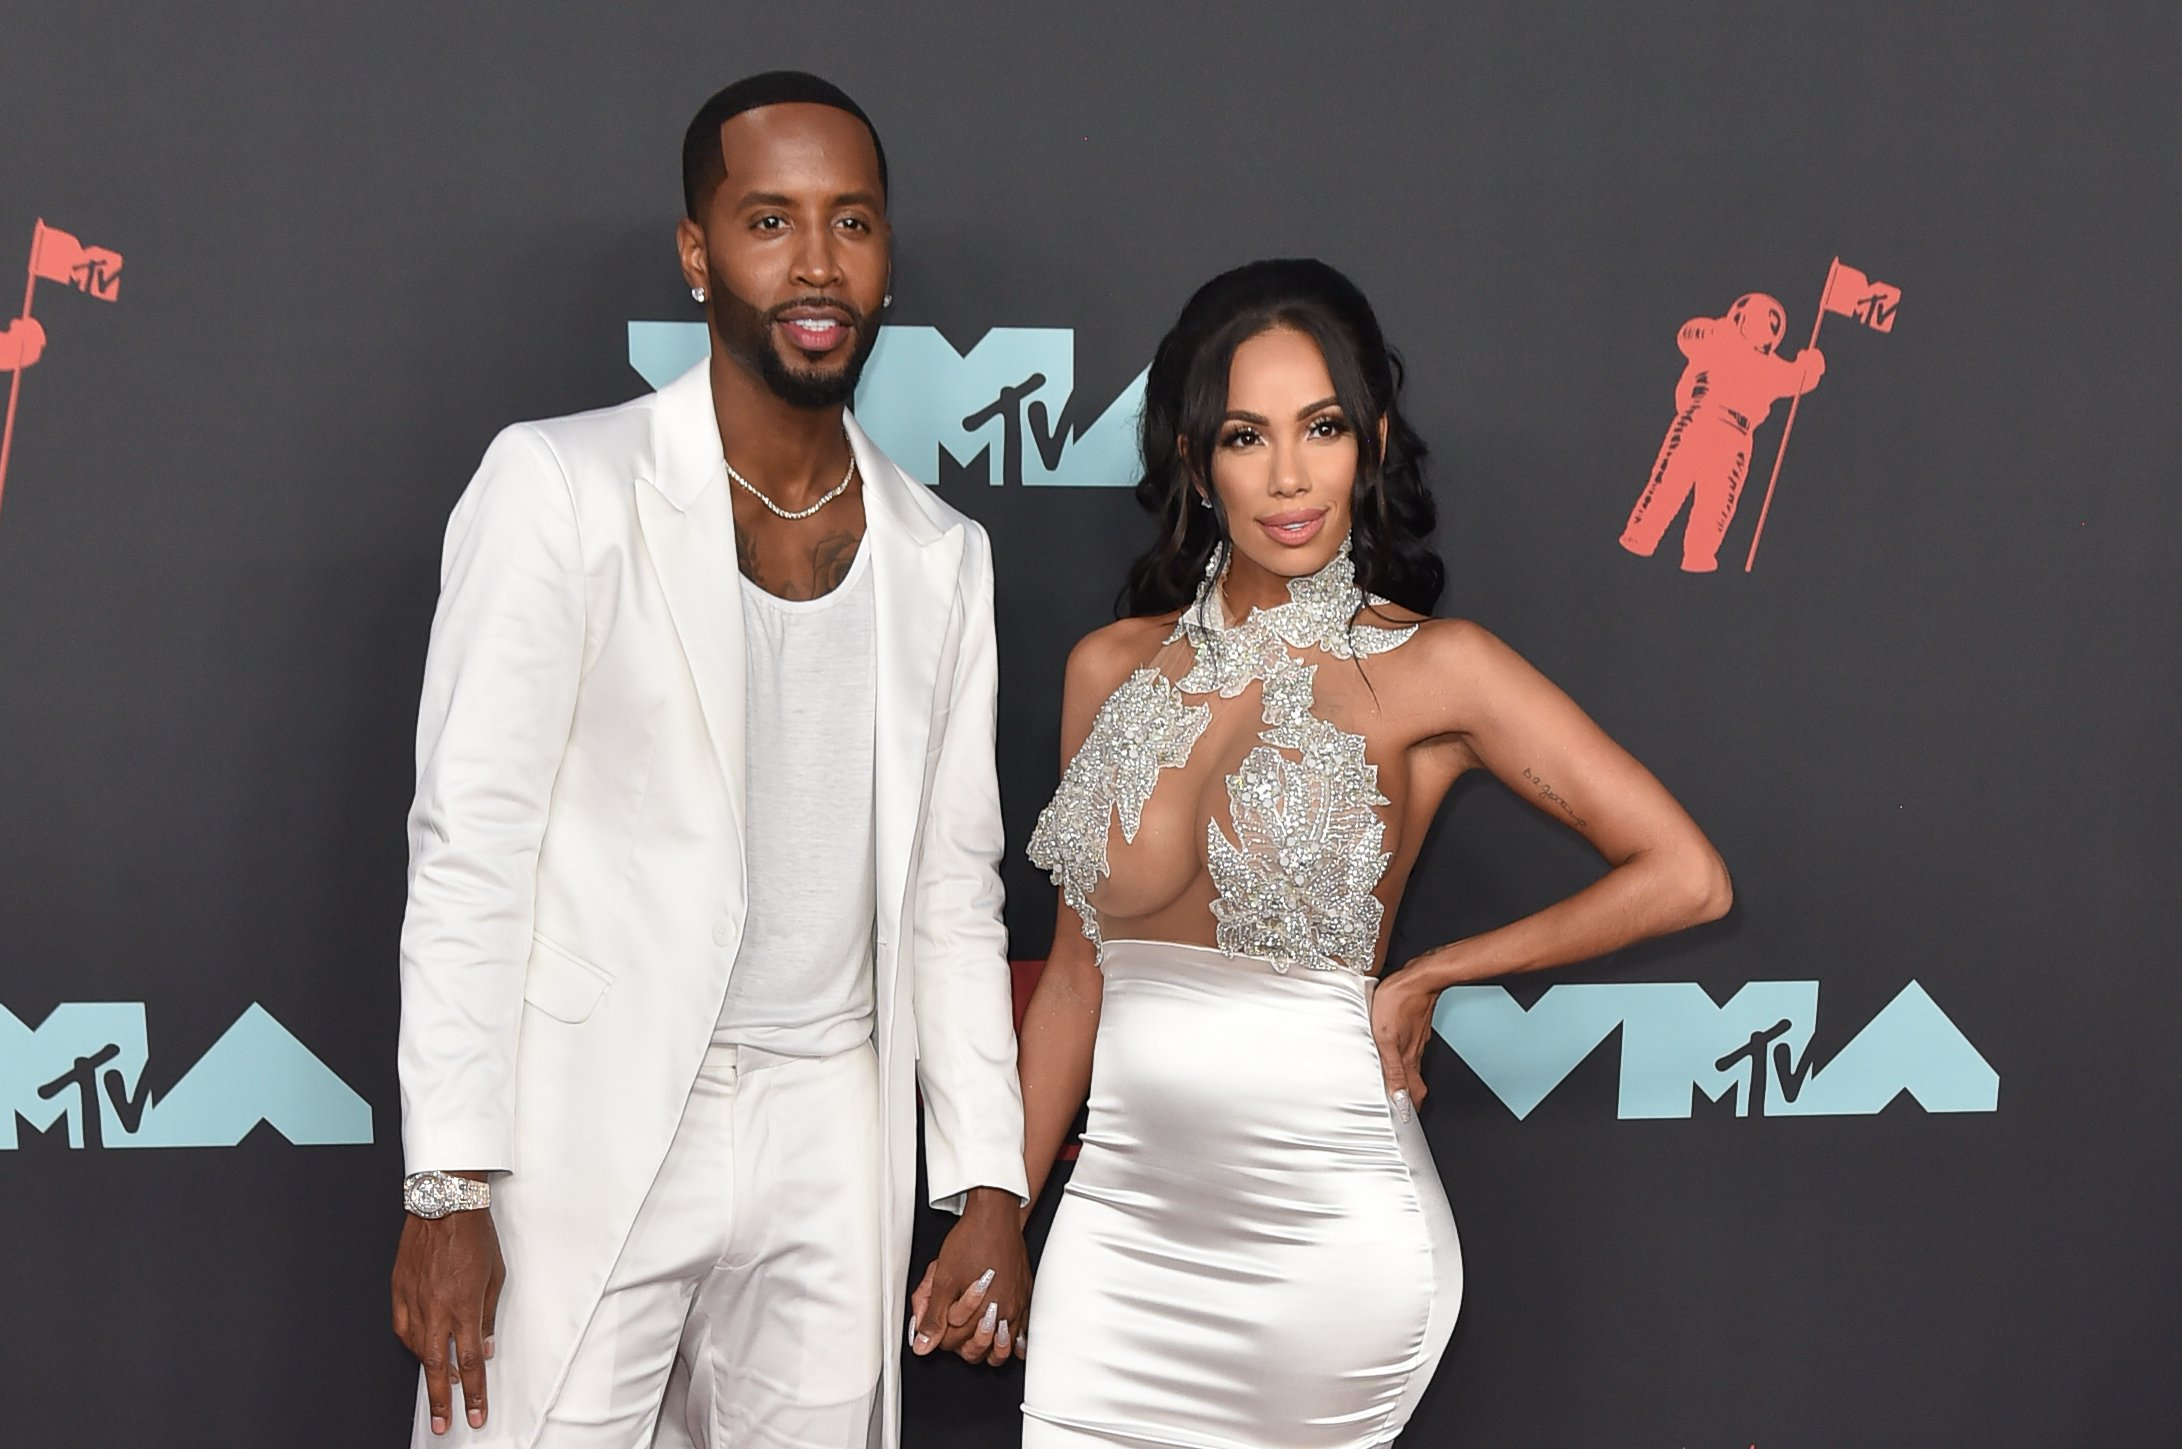 Safaree Samuels and Erica Mena attend the 2019 MTV Video Music Awards at Prudential Center on August 26, 2019 in Newark, New Jersey. | Photo: Getty Images